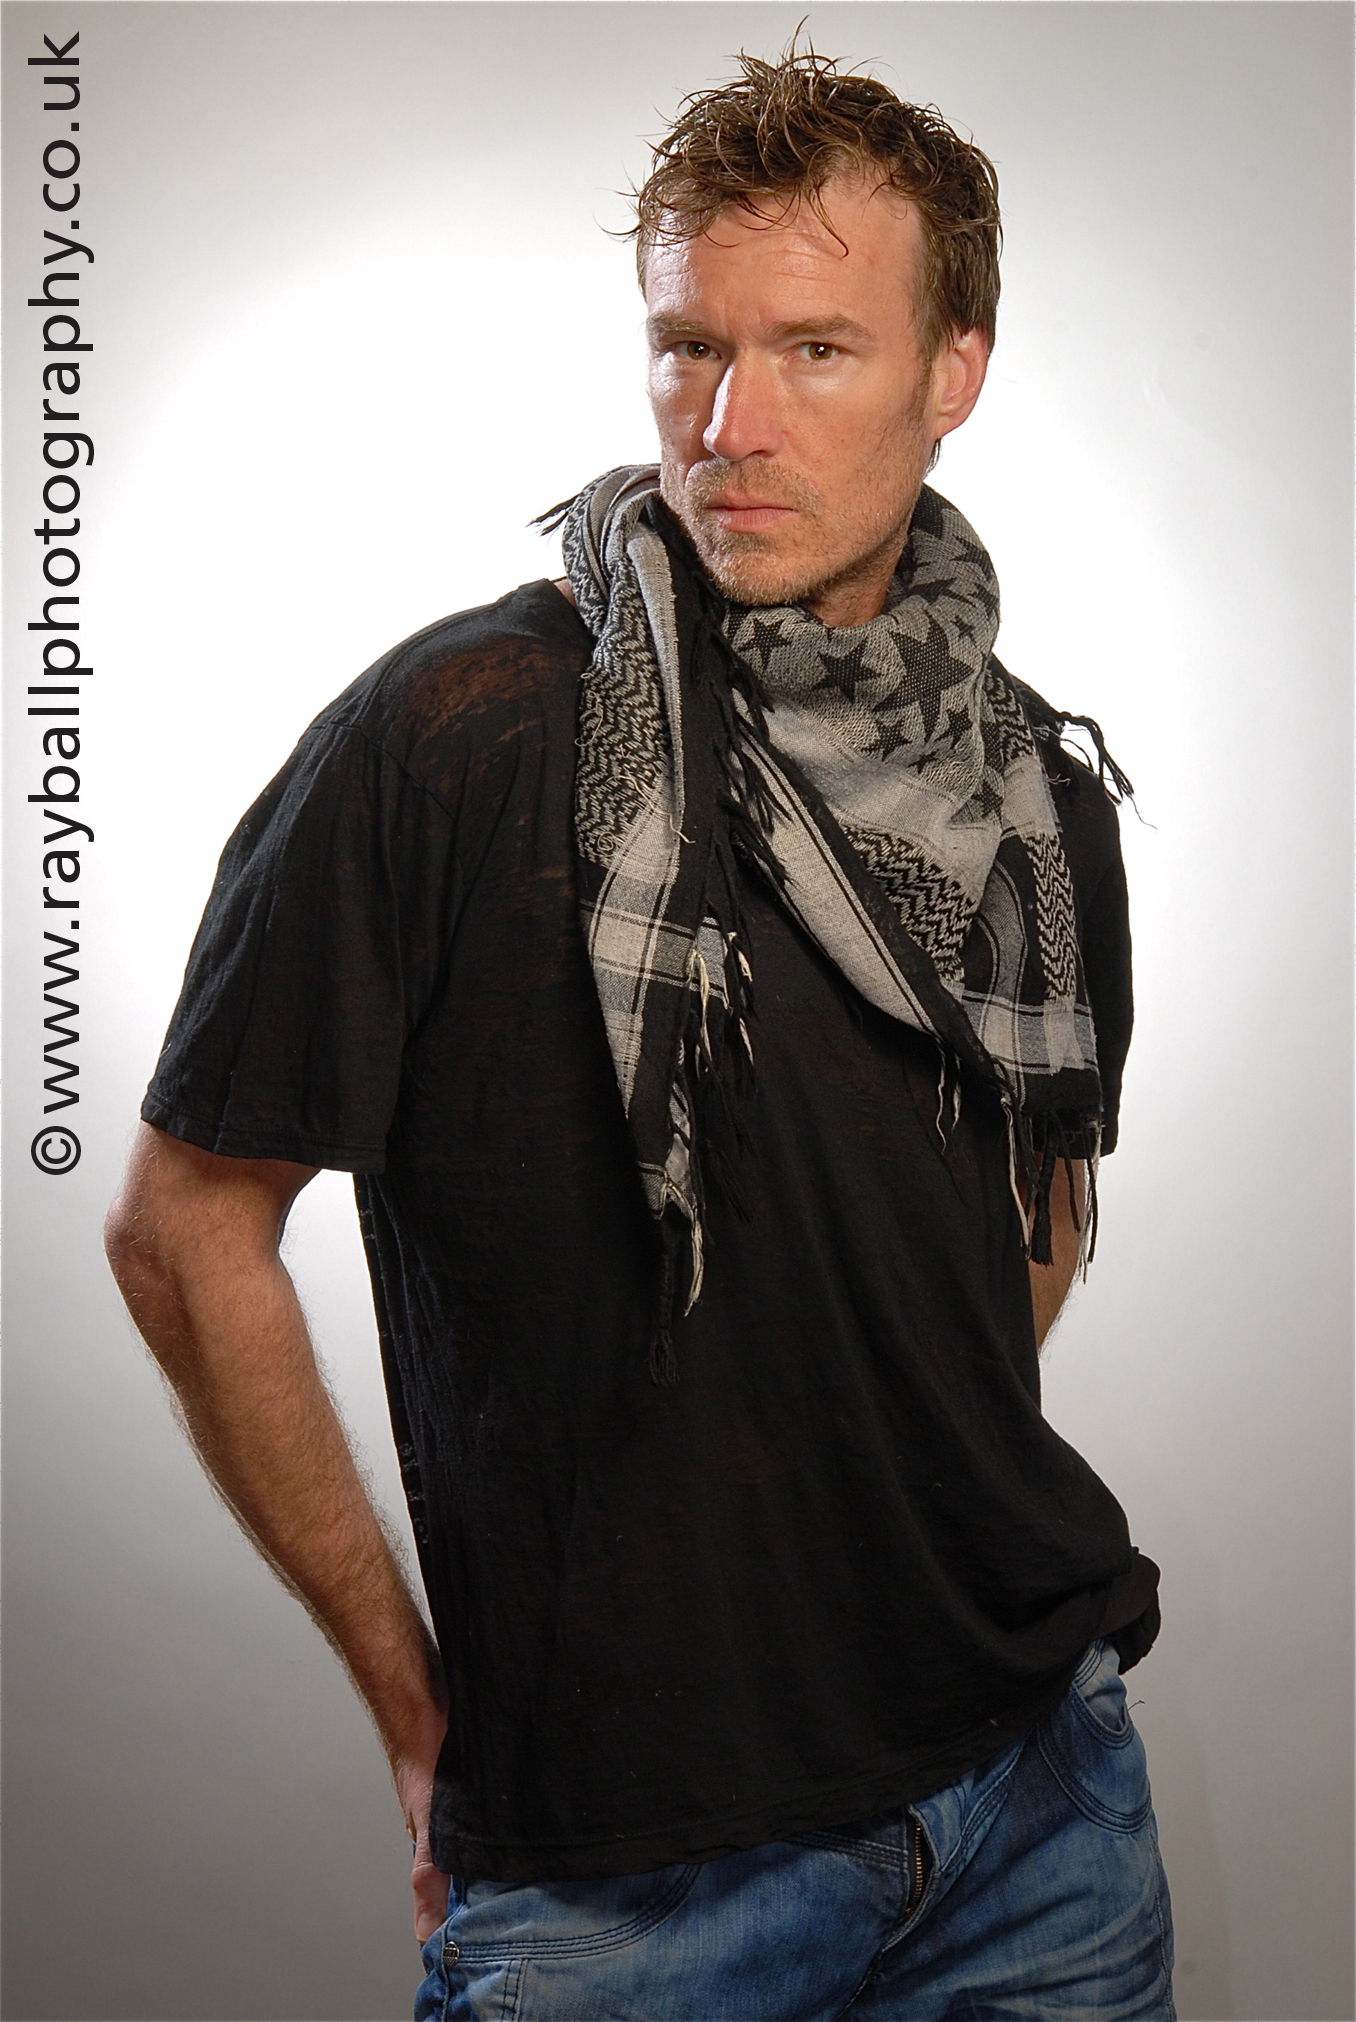 Burgh Heath fashion at Epsom Photography studio.